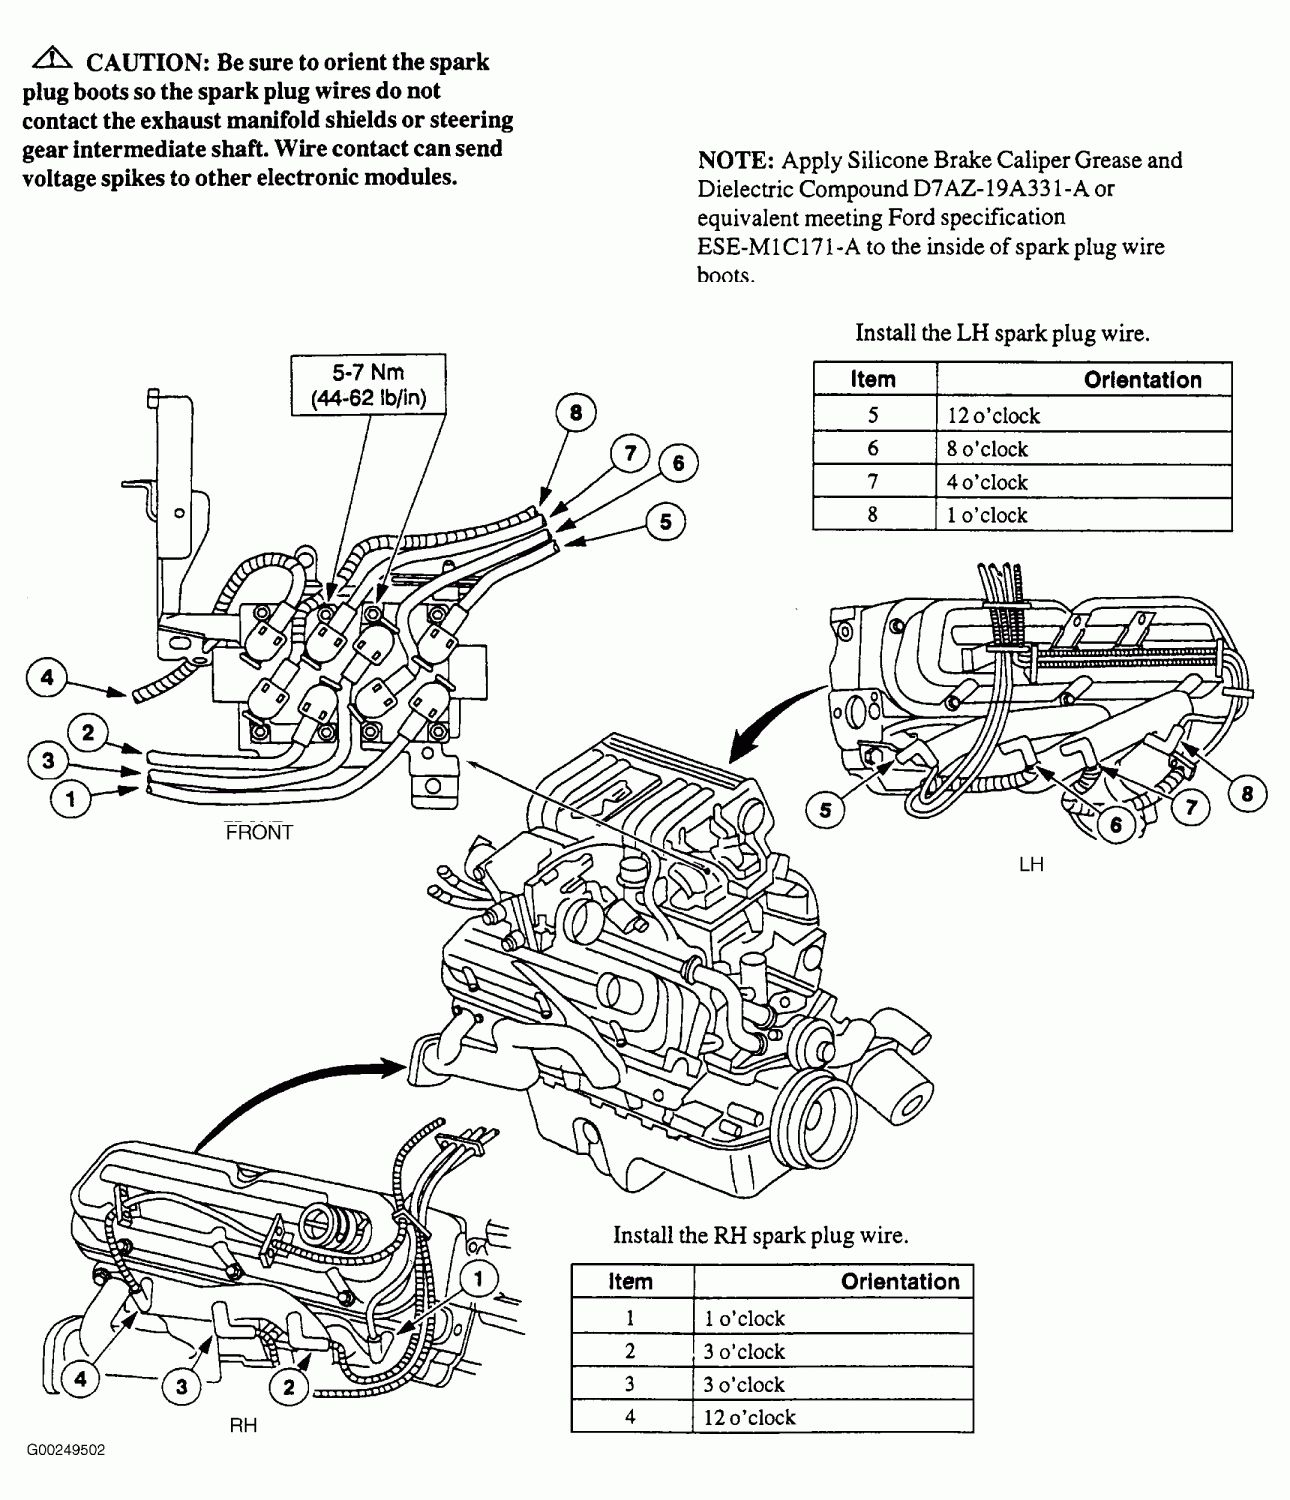 Ford Explorer 40 Firing Order Diagram